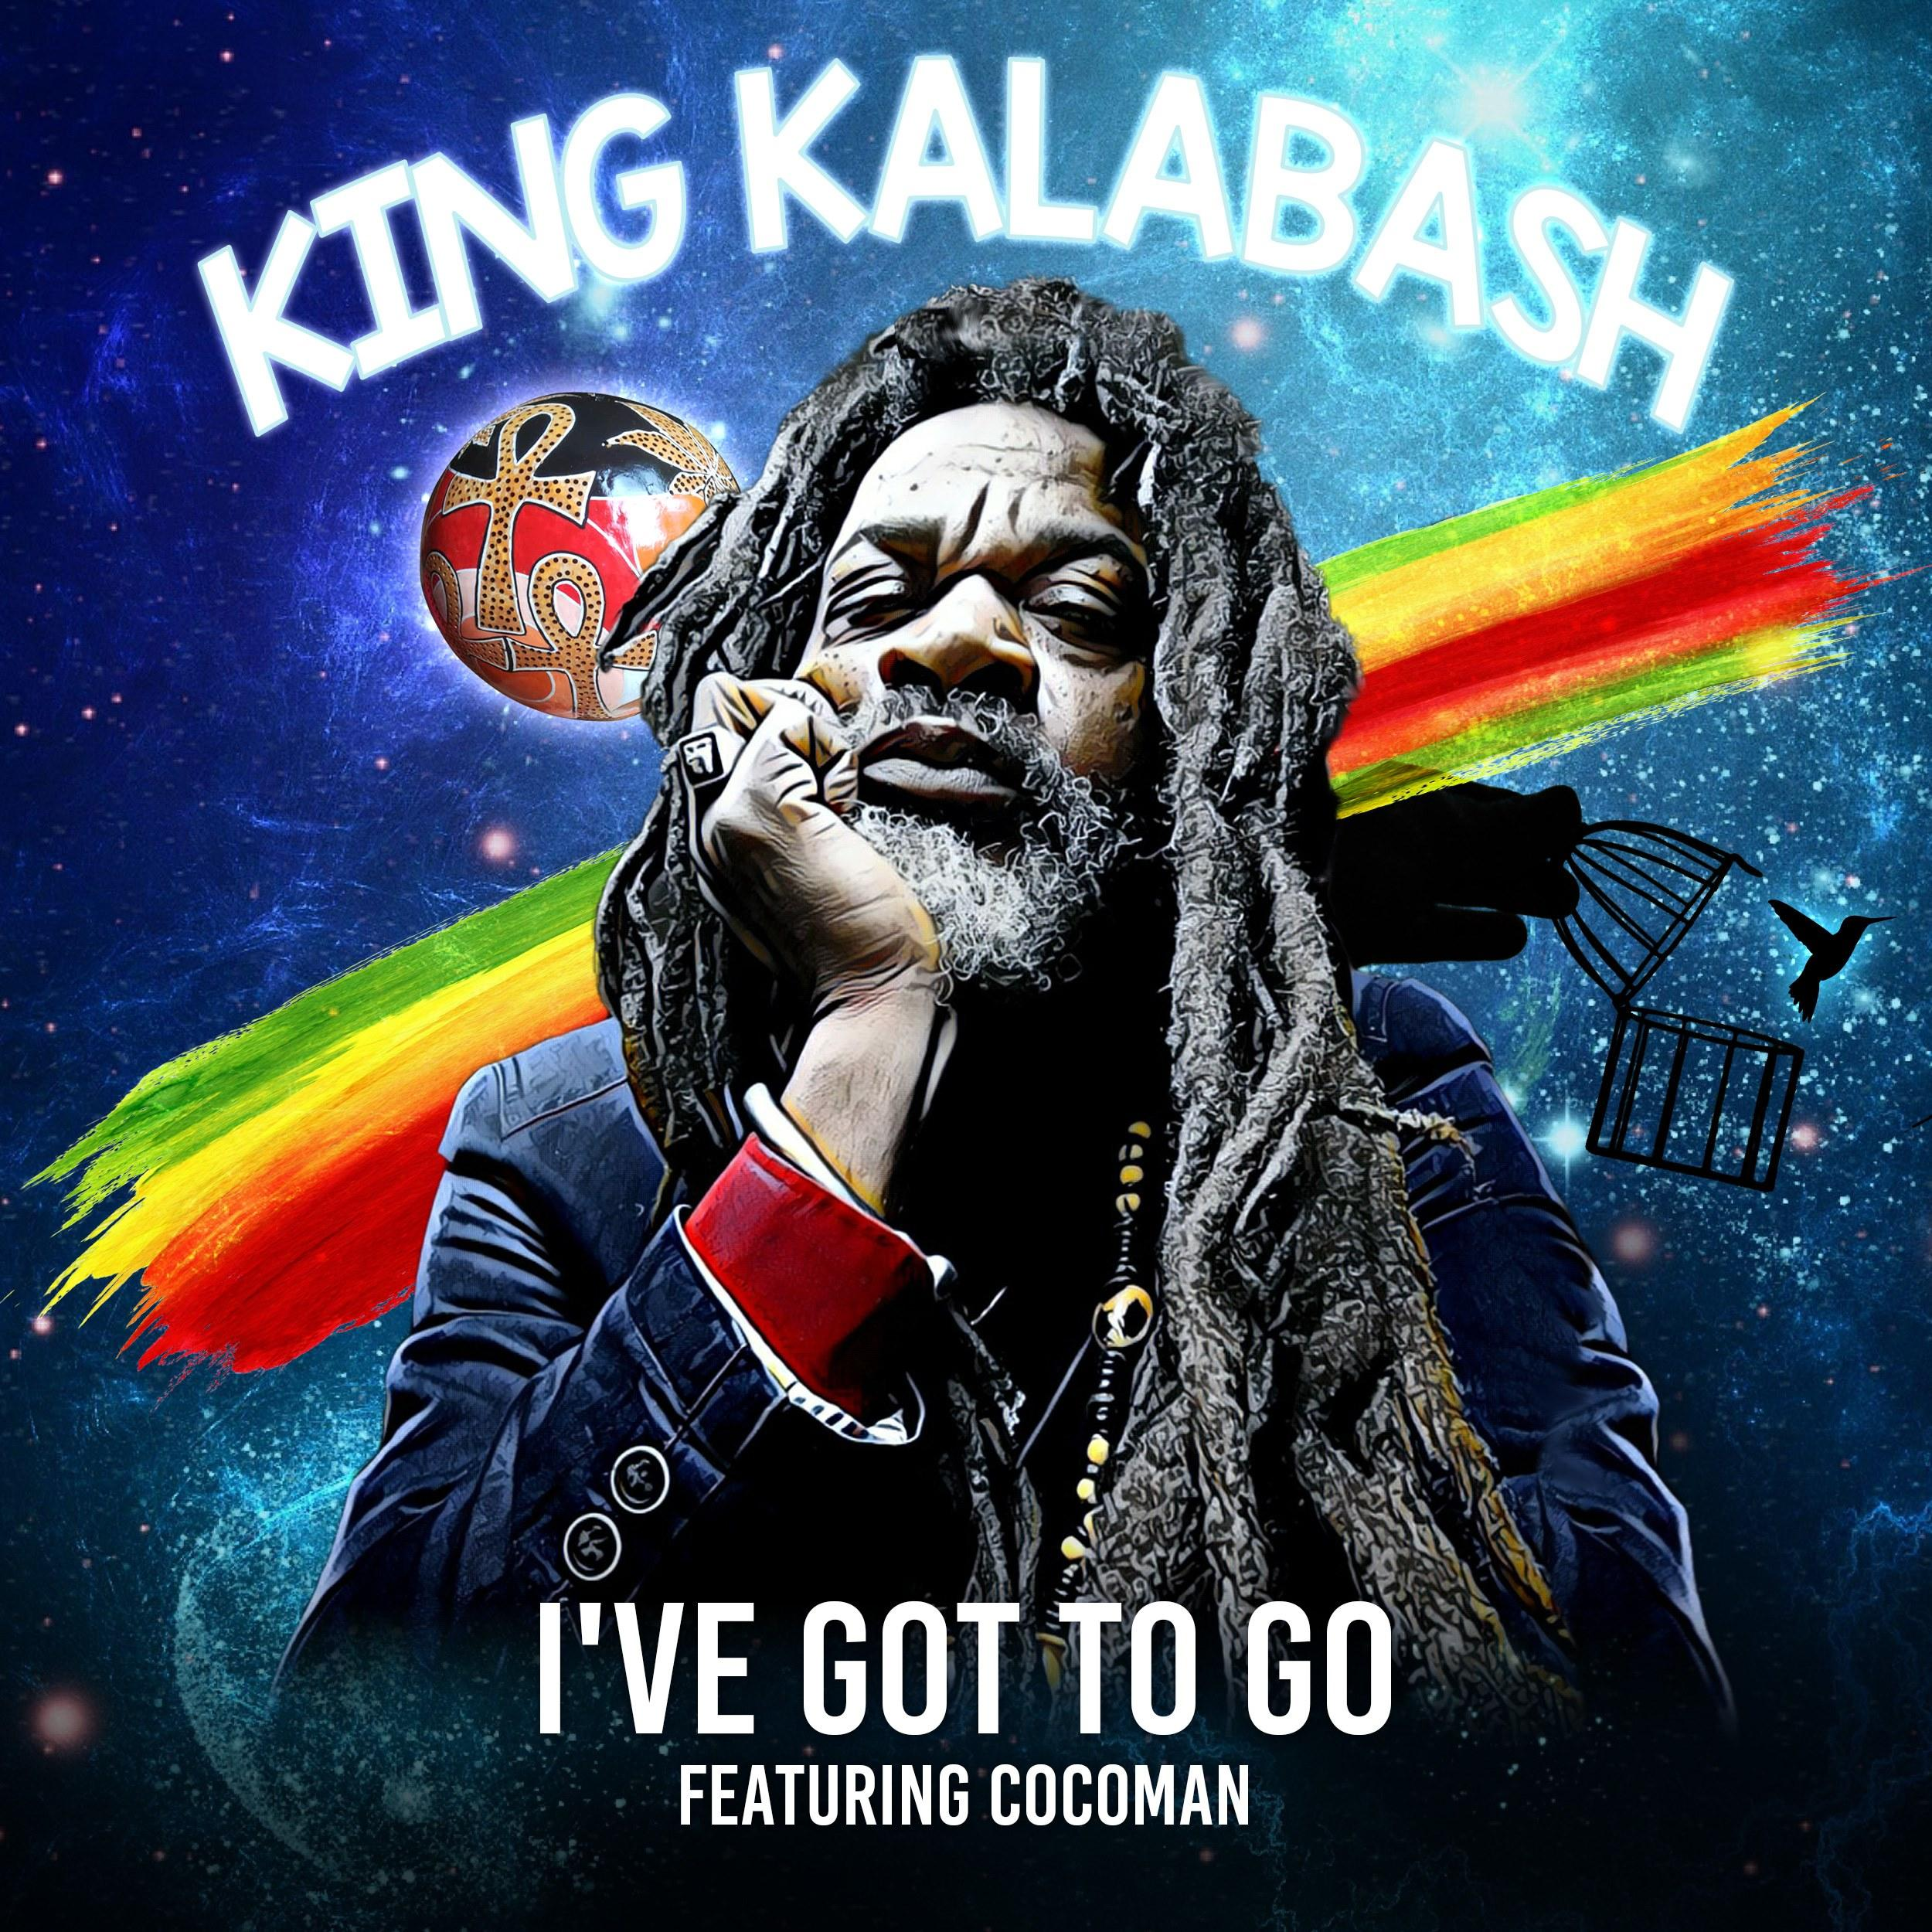 I've got to go, le nouveau single de King Kalabash featuring Cocoman